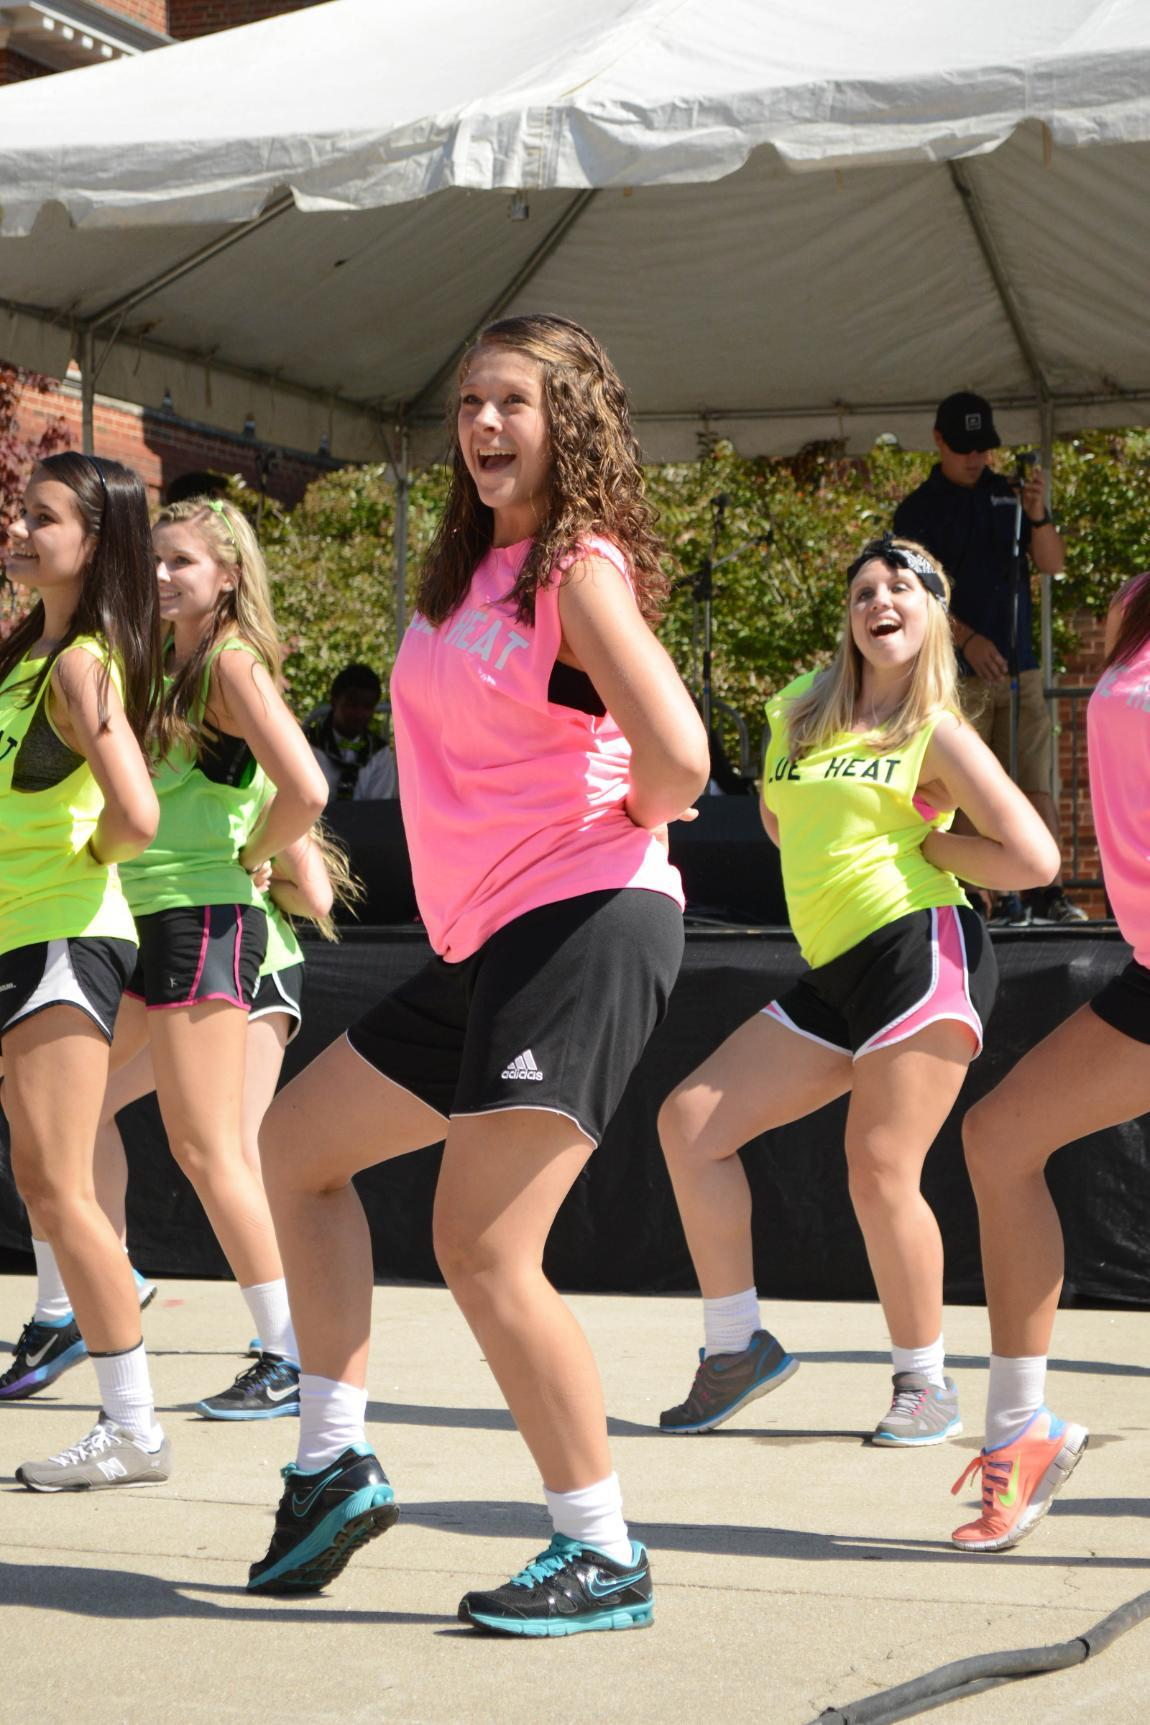 Young women perform a dance in brightly colored tank tops at Oktoberfest